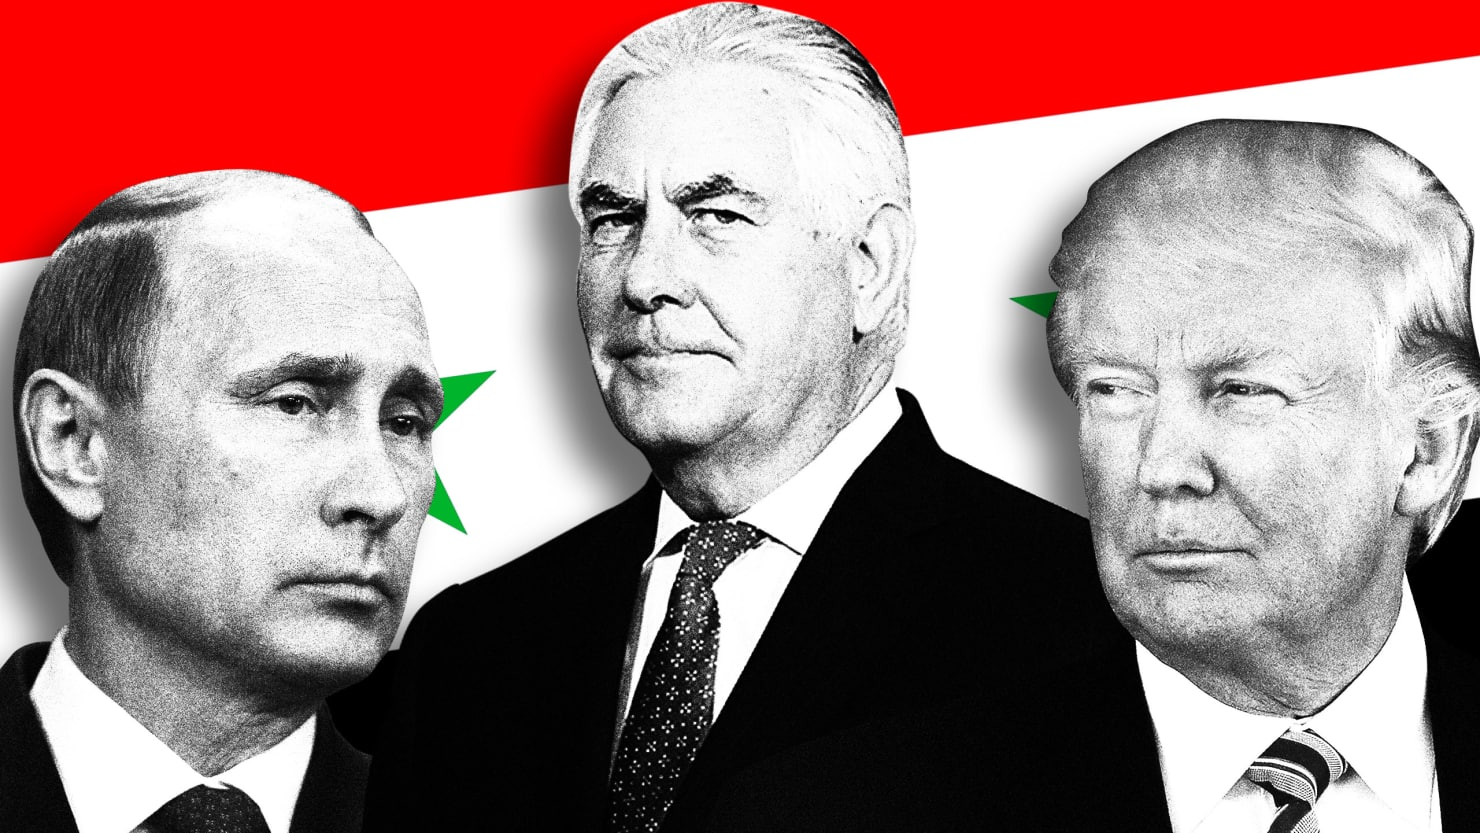 EXCLUSIVE: This is Trump's plan to team up with Putin in Syria—and leave Assad in power https://t.co/pRItHLFC8Y https://t.co/Bg42Qqz4ab